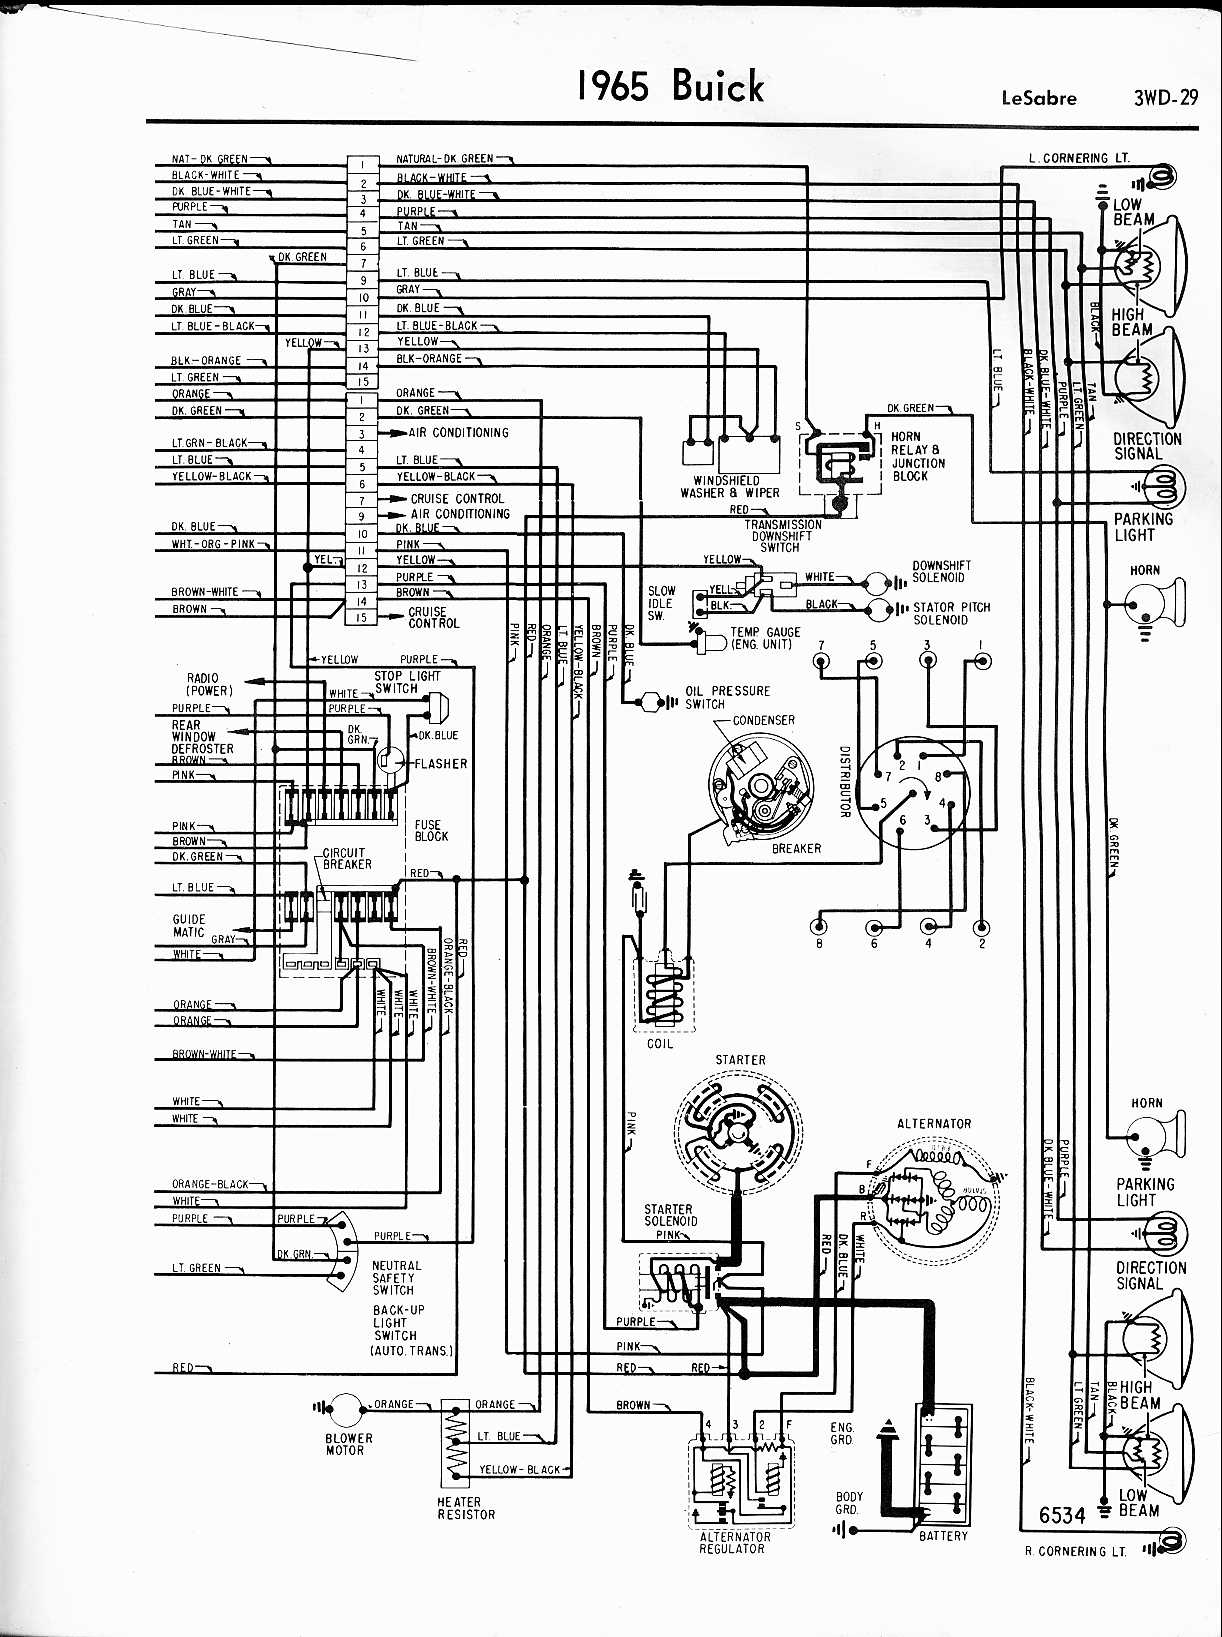 1967 buick skylark fuse box diagram online schematic diagram u2022 rh holyoak co 1964 buick skylark fuse box diagram 1964 buick skylark fuse box diagram